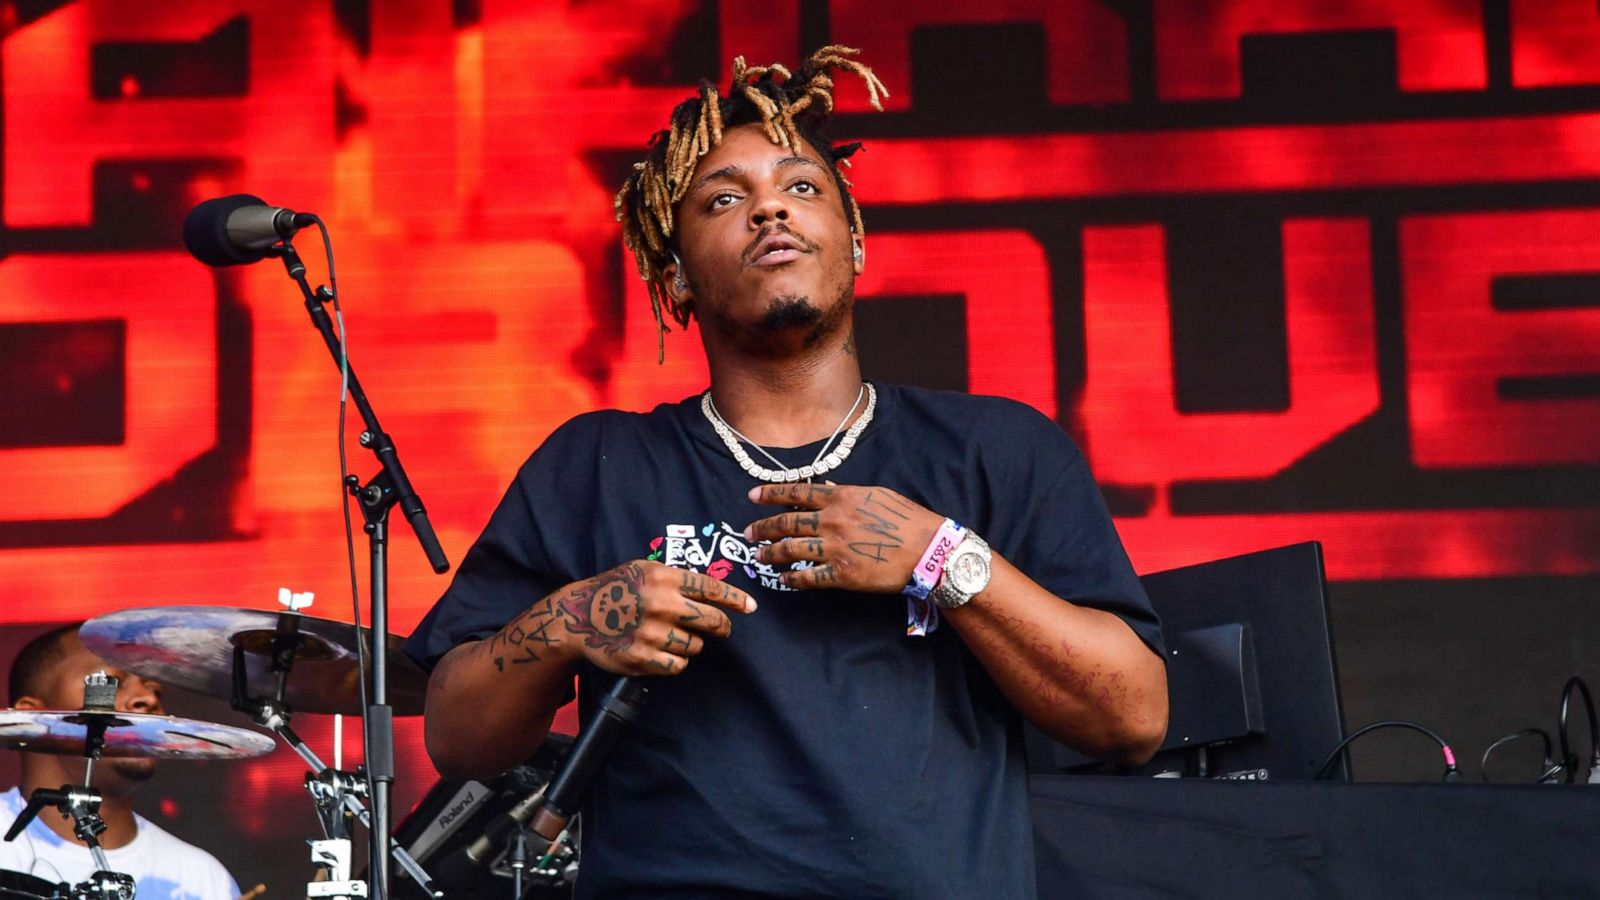 Rapper Juice WRLD dead after suffering medical emergency at Chicago's  Midway Airport - ABC News